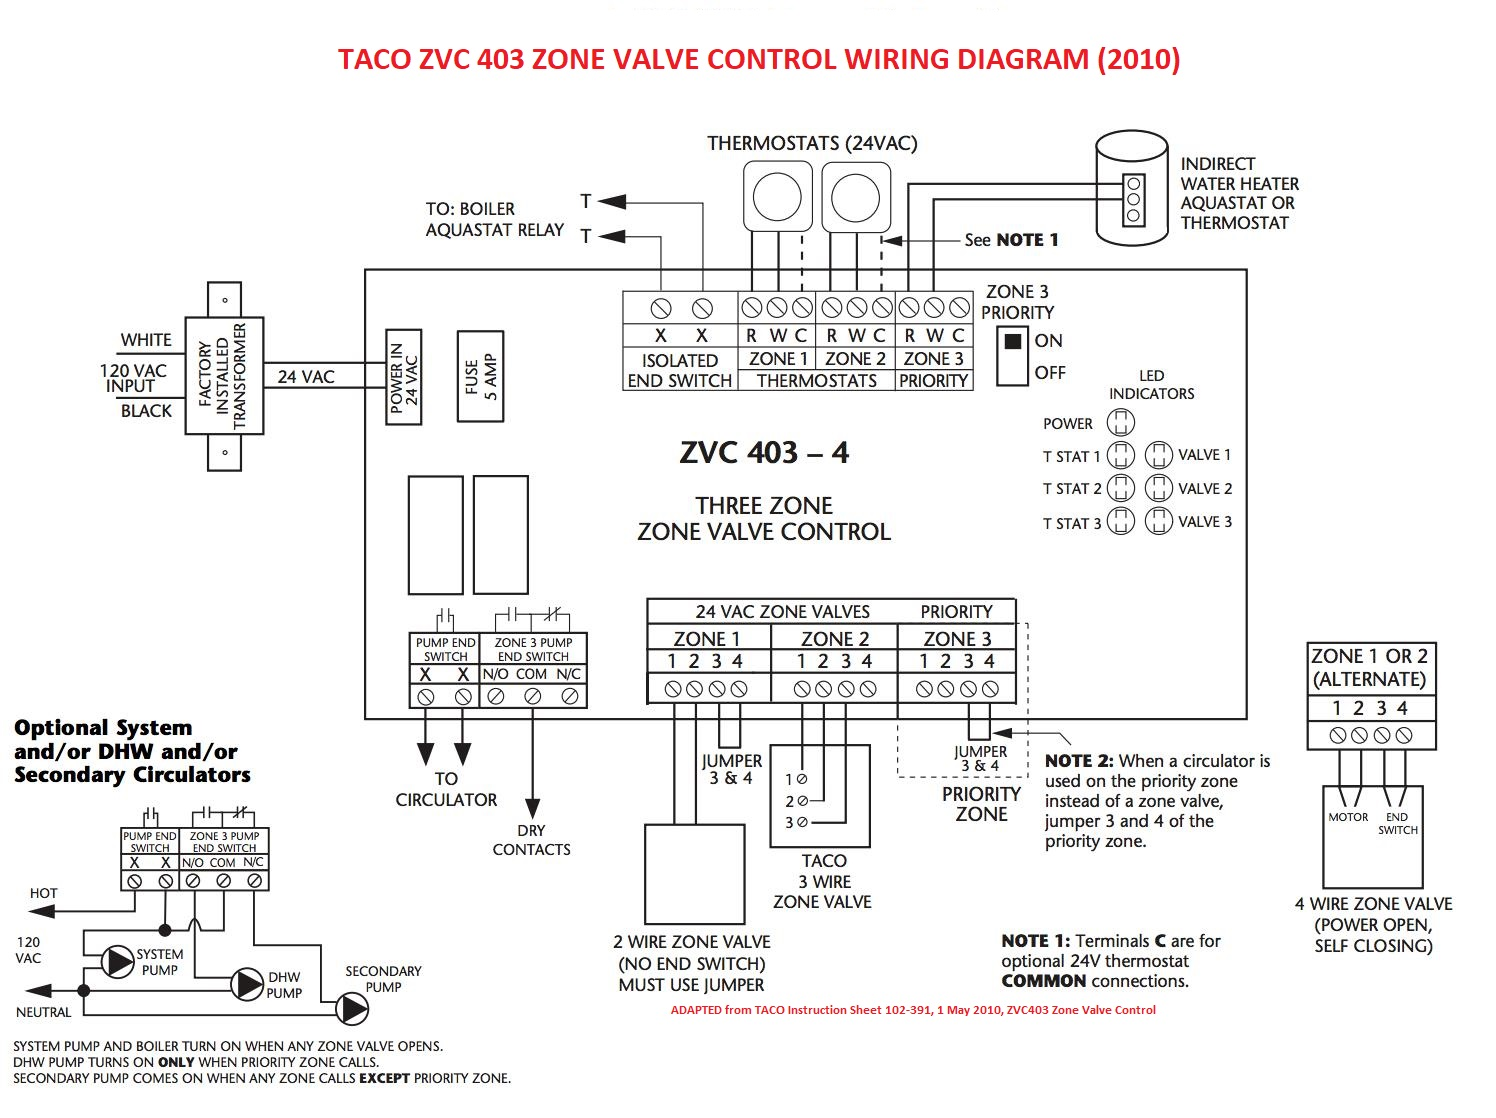 Auto Zone 2 Boiler System Schematic Wiring Info Vacuum Tube Audio Amplifier Circuit Diagram Tradeoficcom Valve Installation Instructions Guide To Heating Rh Inspectapedia Com Damper